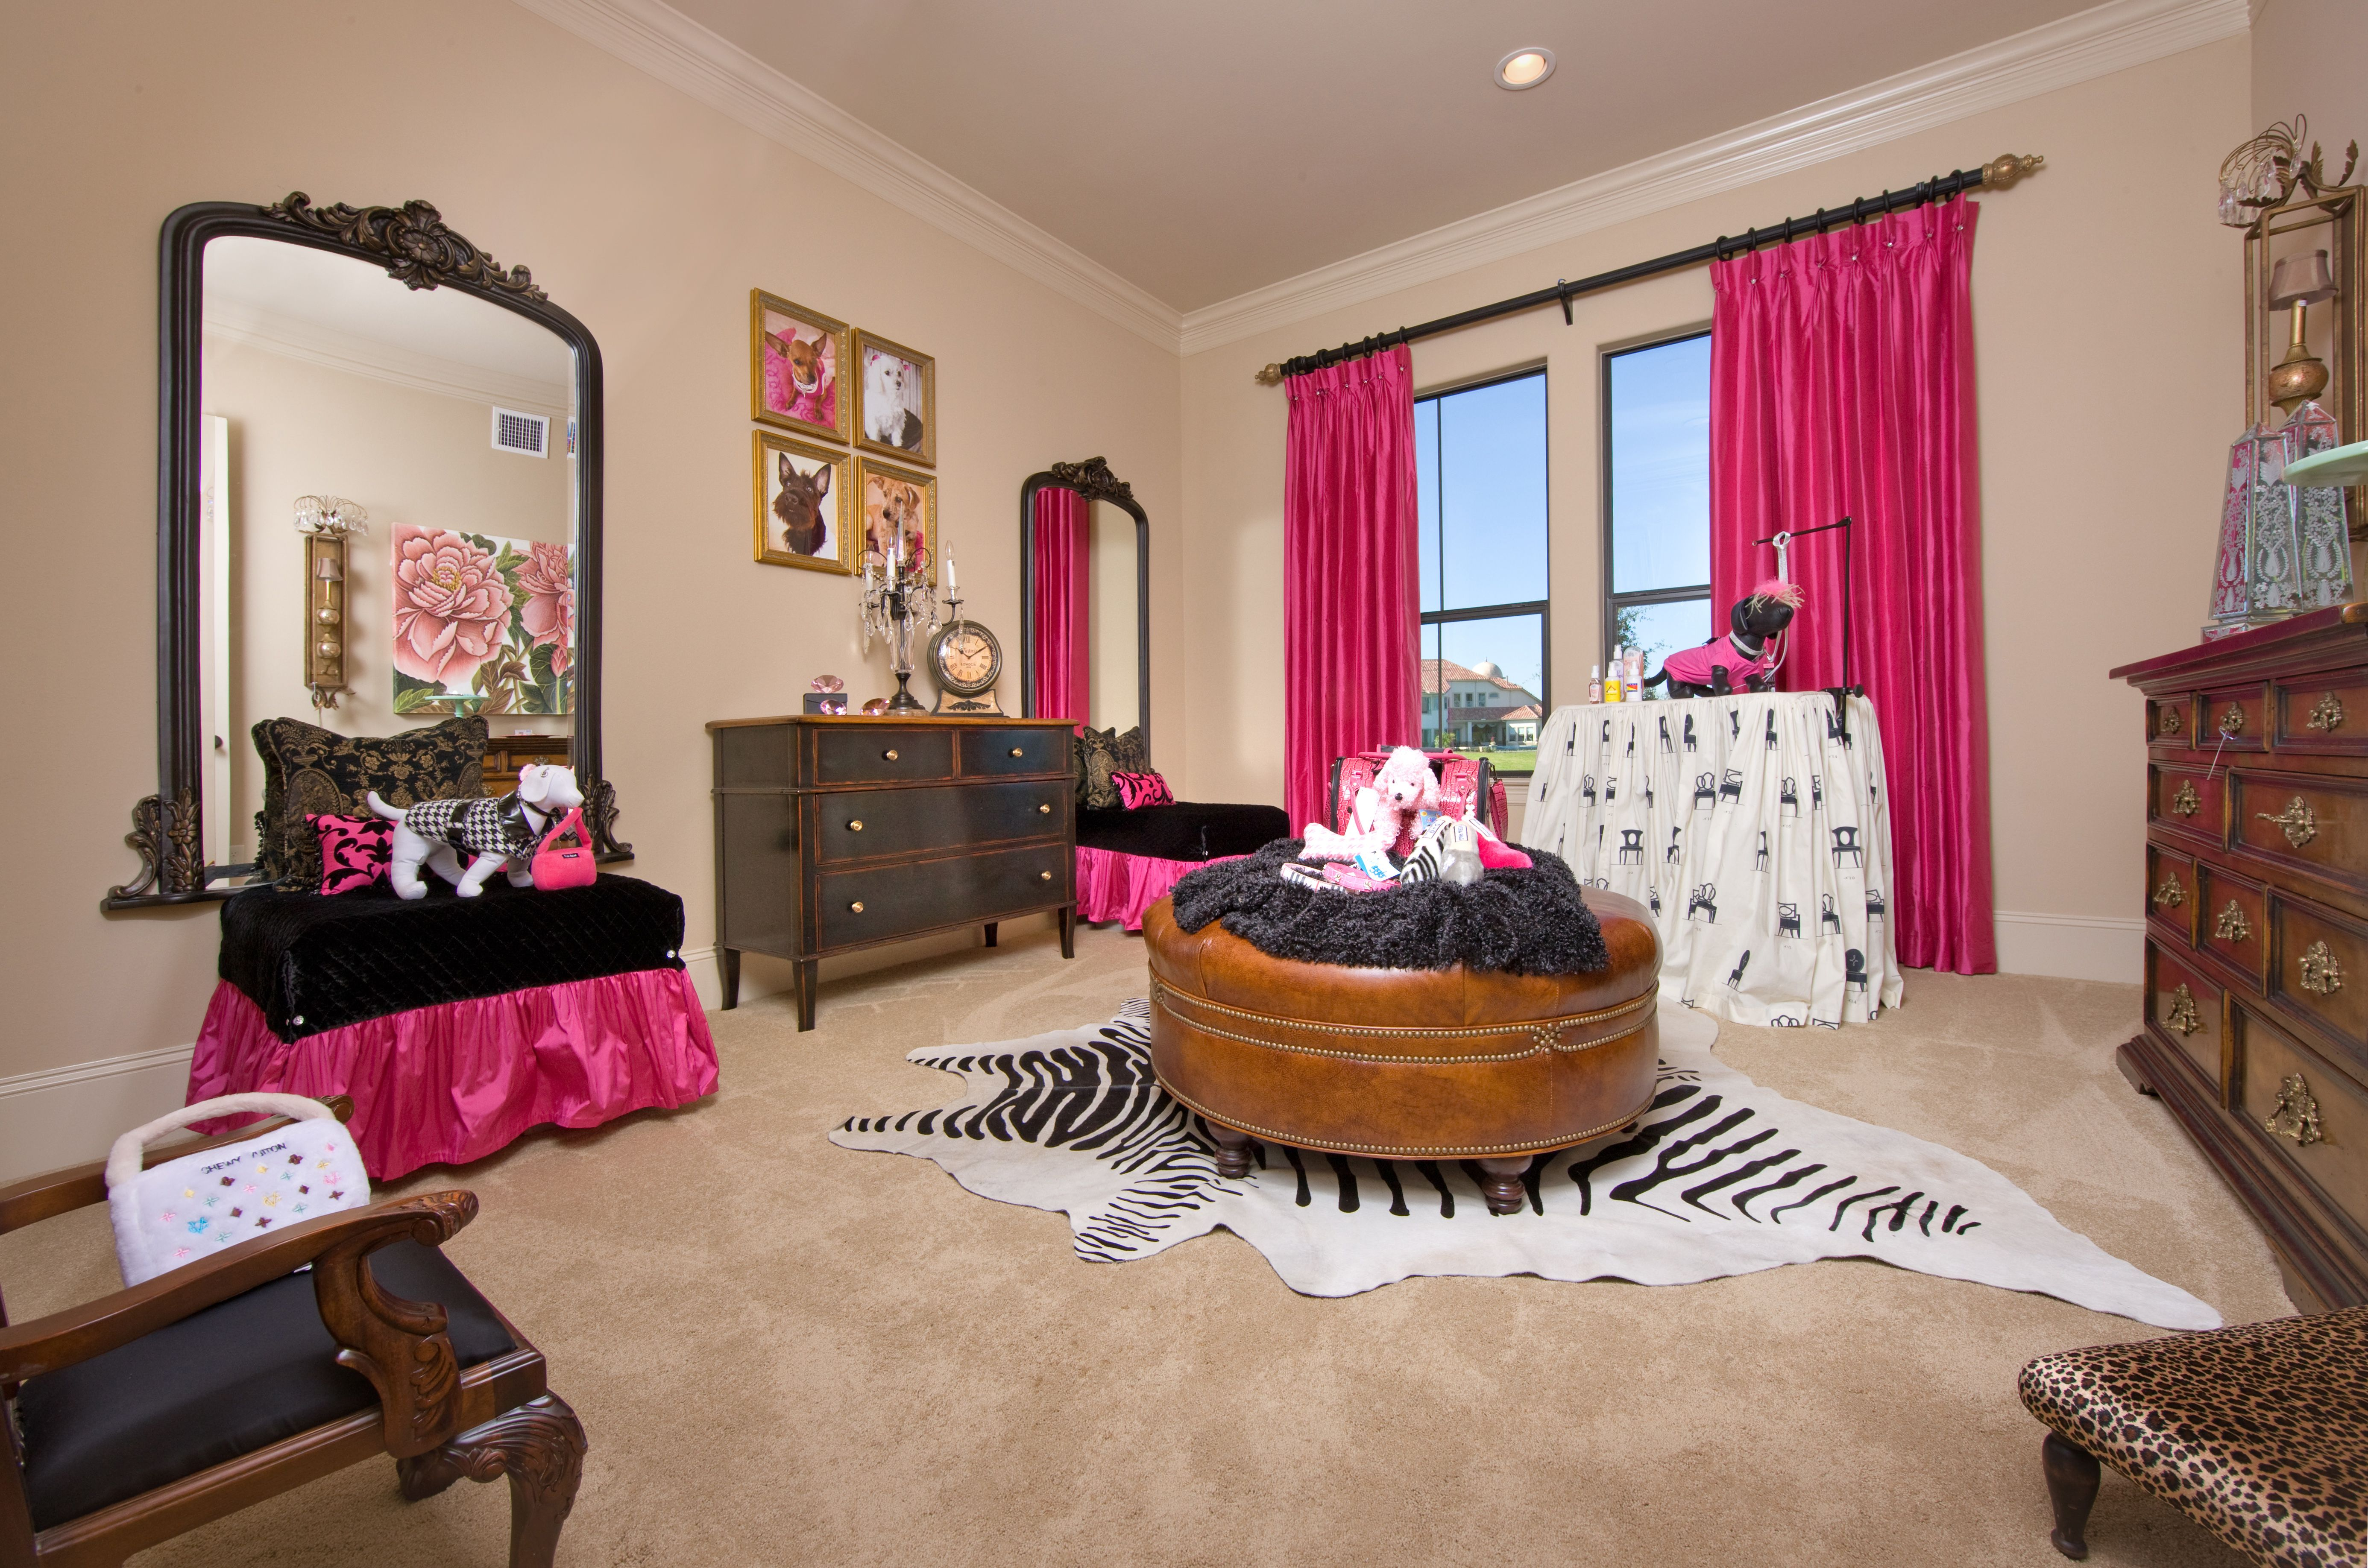 Super Cute Dog Room By Us For The Pets Pinterest Dogs Dog